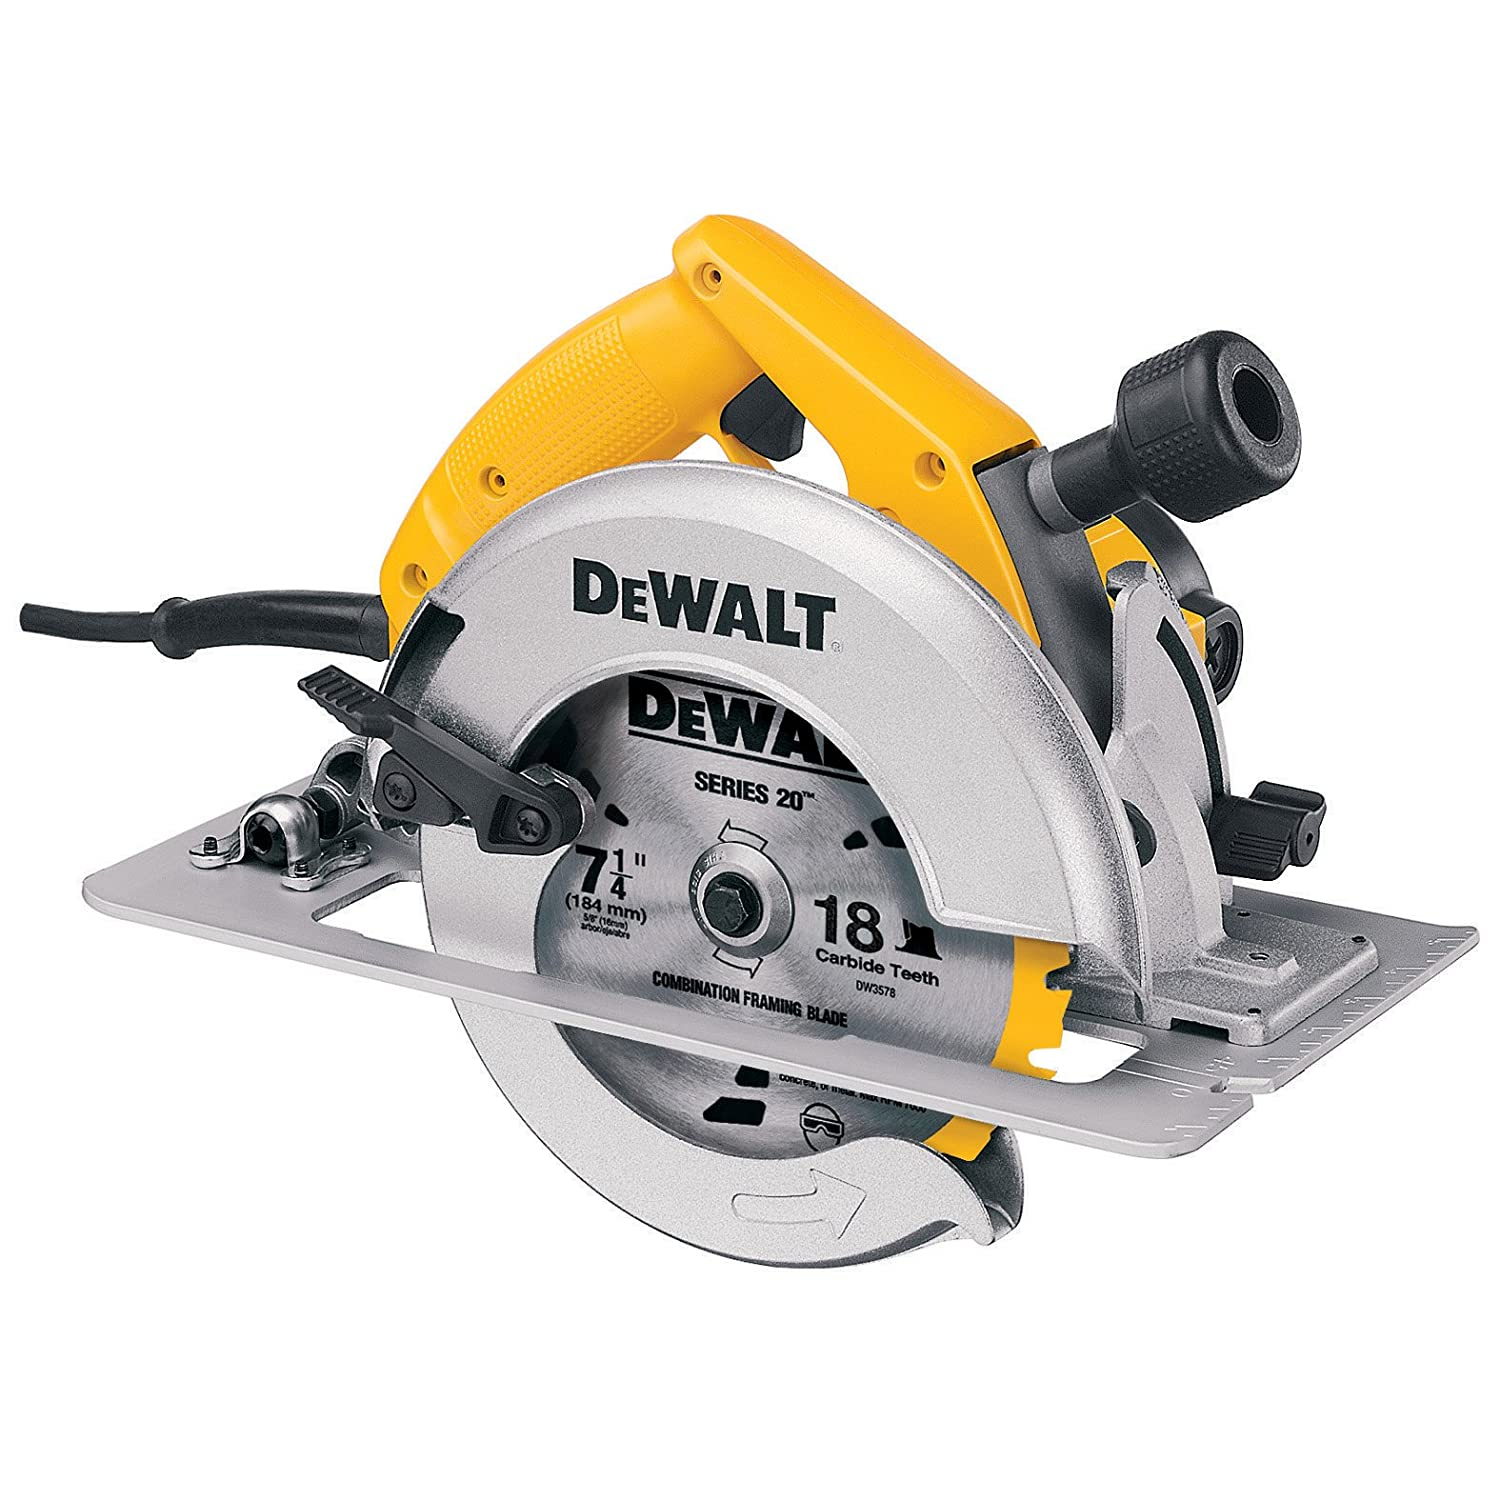 Dewalt dw364 7 14 inch circular saw with electric brake and rear dewalt dw364 7 14 inch circular saw with electric brake and rear pivot depth of cut adjustment power circular saws amazon keyboard keysfo Gallery